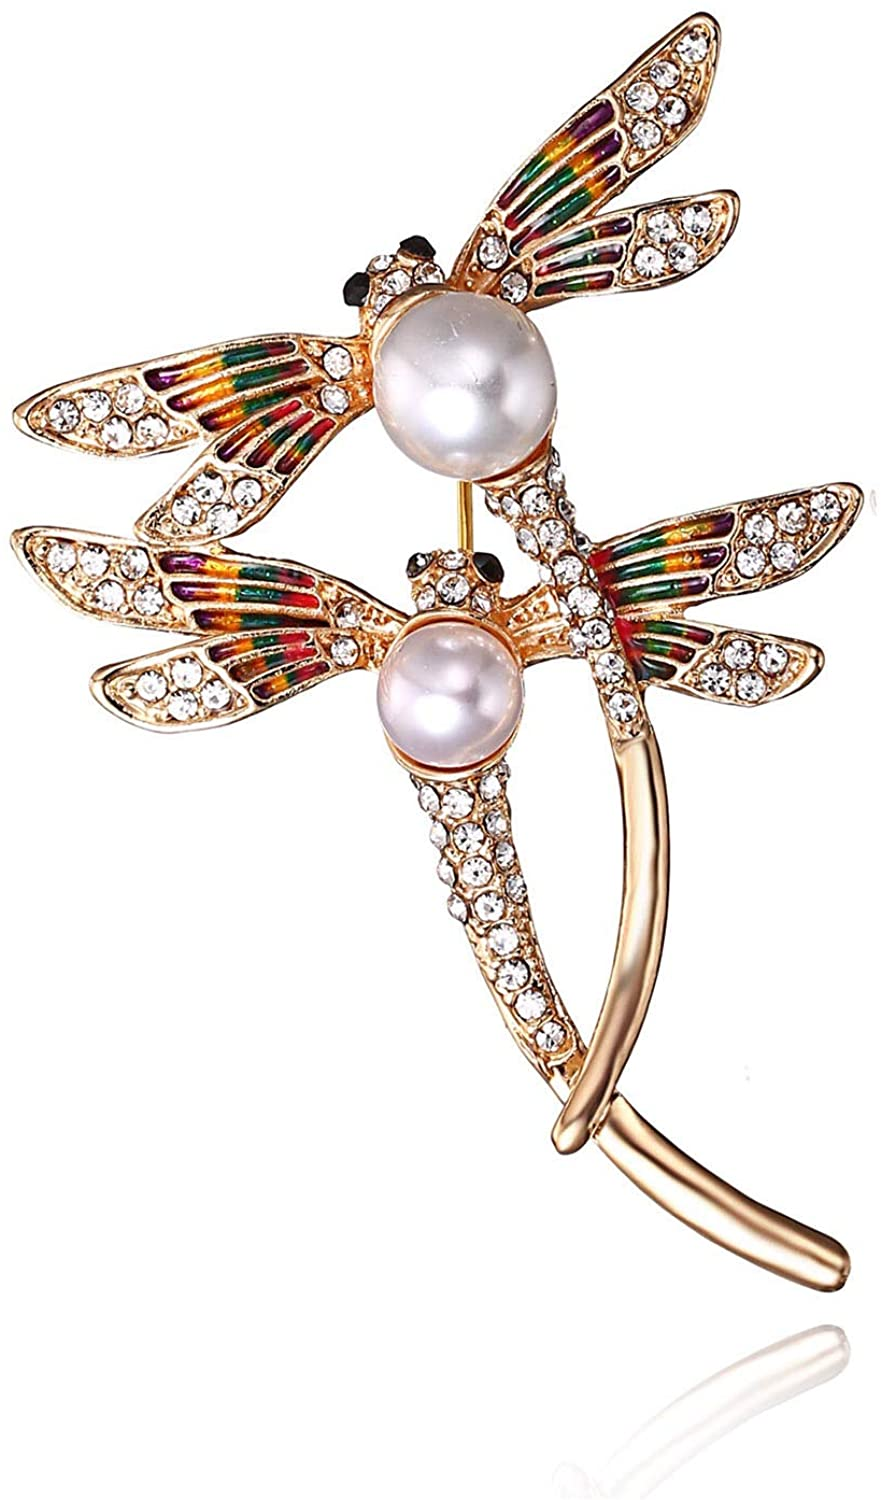 AILUOR Elegant Dragonfly Brooch Pins, Gold Tone Austrian Crystal Colorful Enamel Double Dragonfly Simulated Pearl Rhinestone Brooch Jewelry